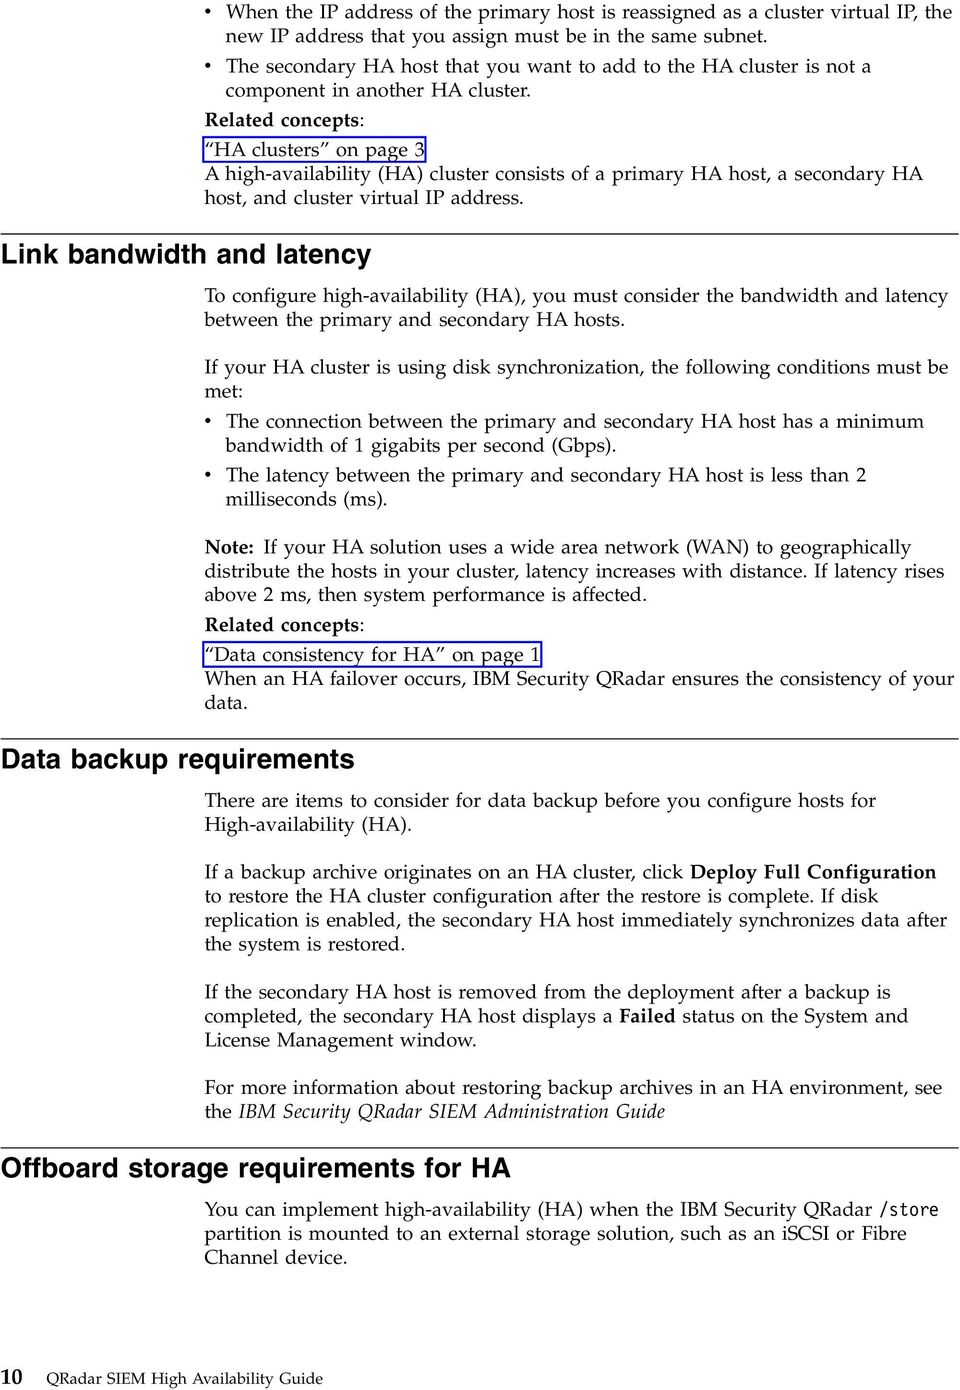 Related concepts: Link bandwidth and latency HA clusters on page 3 A high-availability (HA) cluster consists of a primary HA host, a secondary HA host, and cluster virtual IP address.